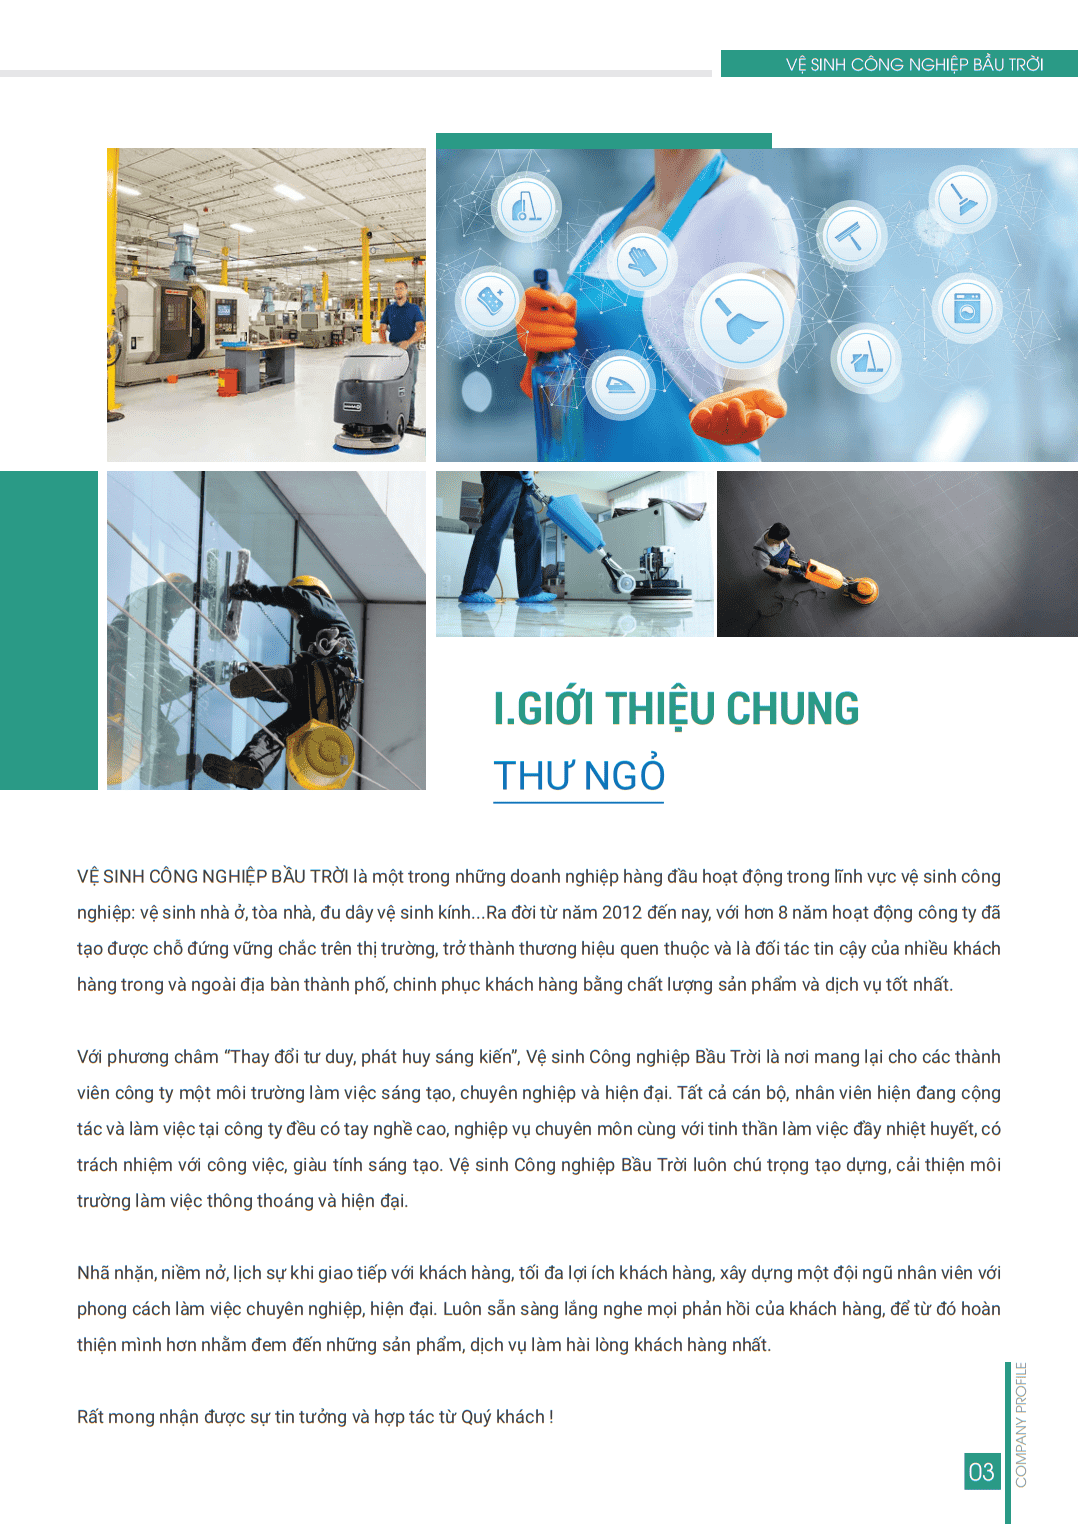 Vệ sinh công nghiệp - Thư Ngỏ - SKY CLEANING SERVICES - PROFILE 3